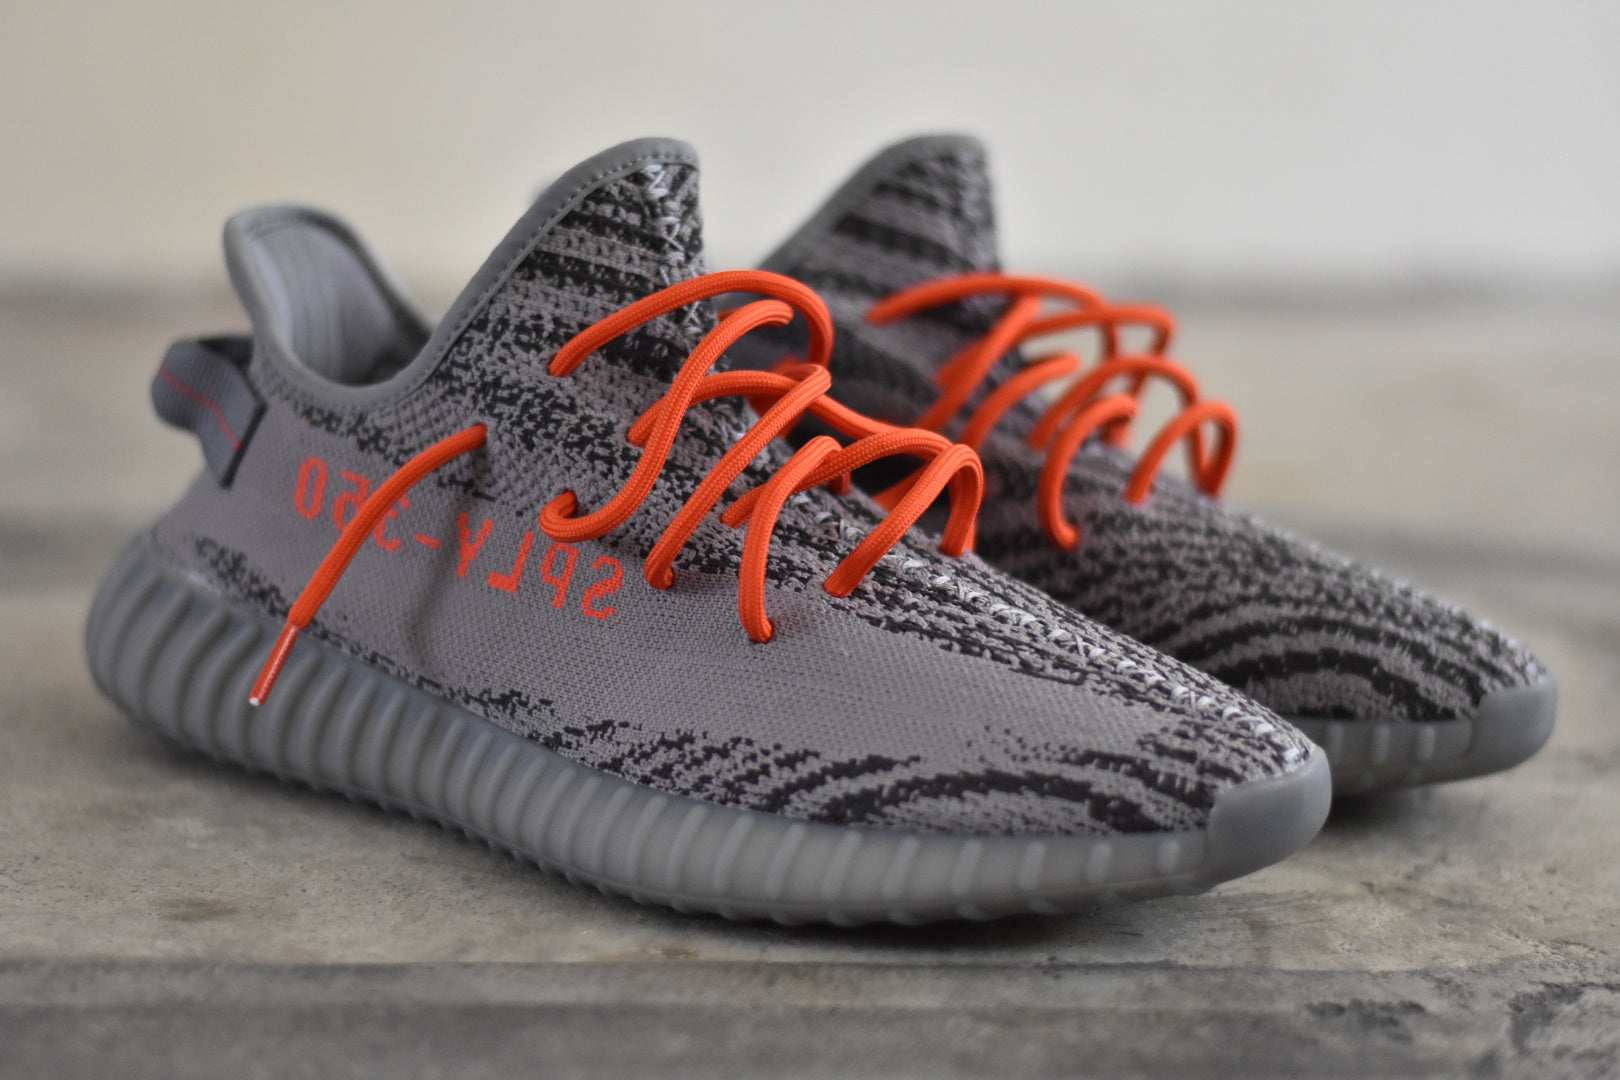 Where to buy replacement shoe laces for ADIDAS Yeezy Boost 350 V2 Beluga 2.0